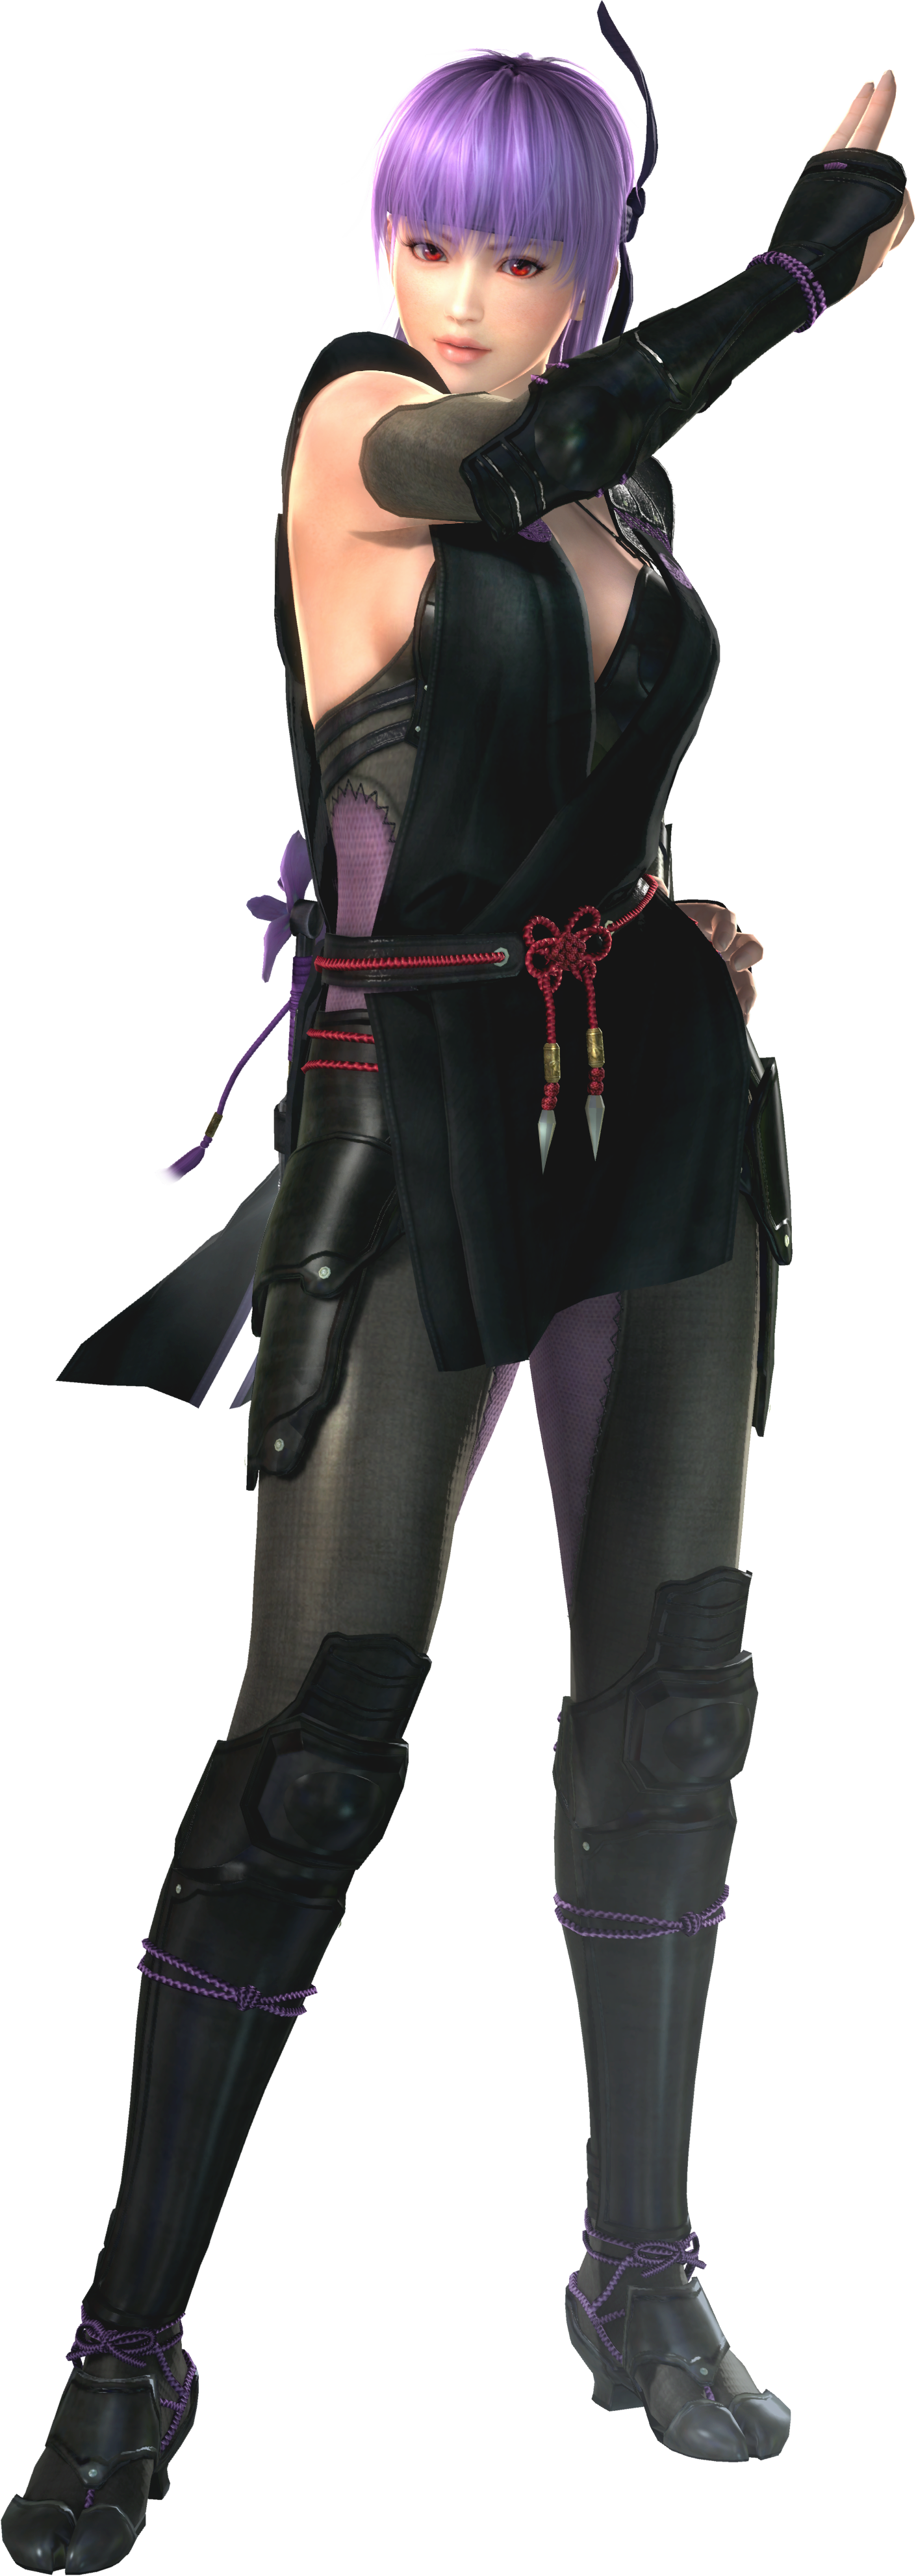 http://vignette3.wikia.nocookie.net/deadoralive/images/2/20/DOA5_Ayane_Render.png/revision/latest?cb=20130616175519